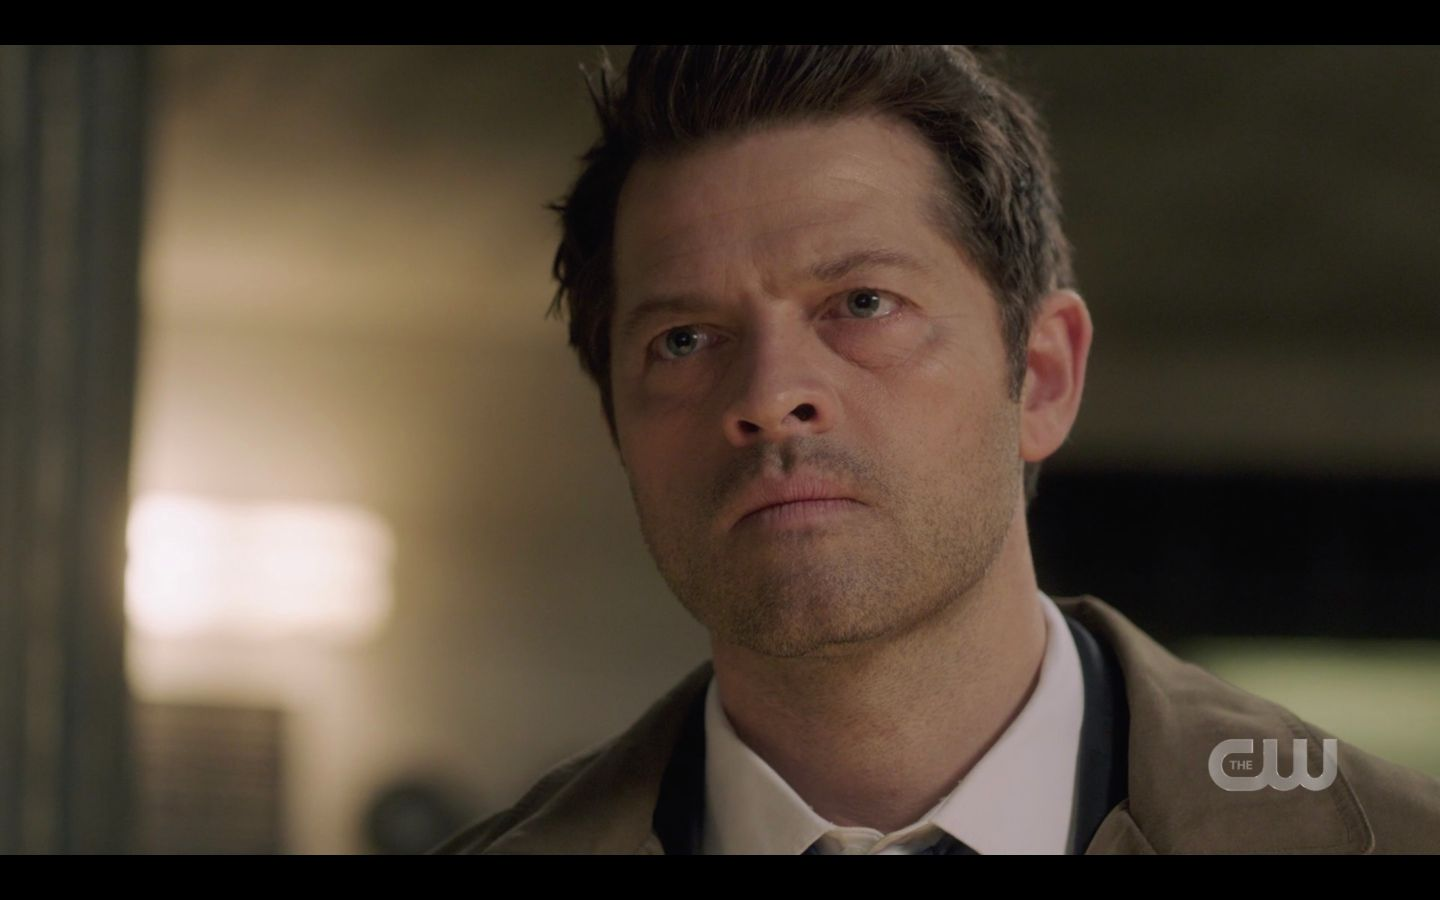 Castiel to Dean about killing Jack there has to be another way SPN 14.20